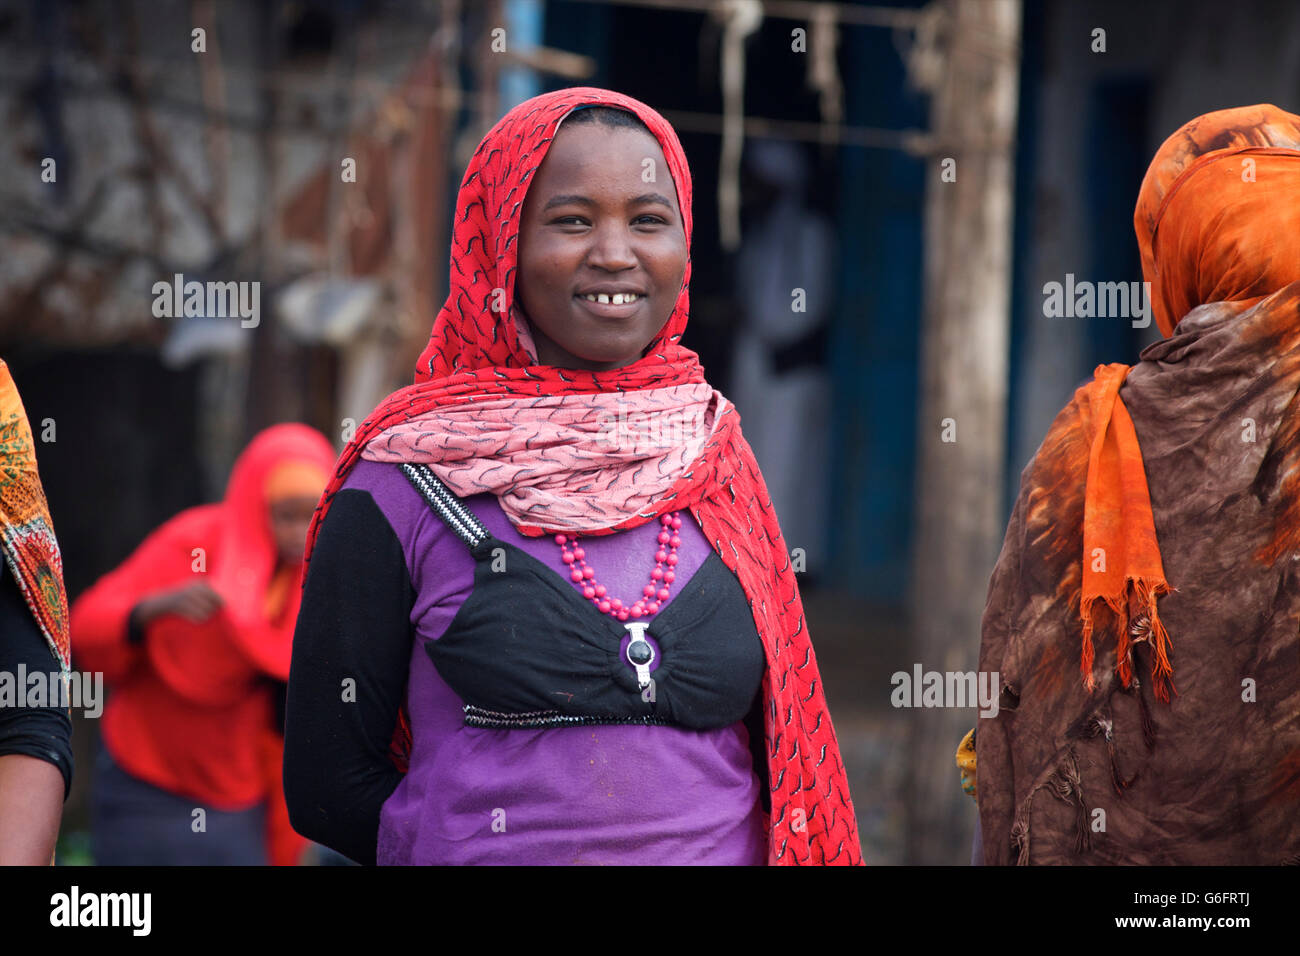 Oromo woman wearing a hijab and a bra-type garment over her top. Near Harar, Ethiopia - Stock Image